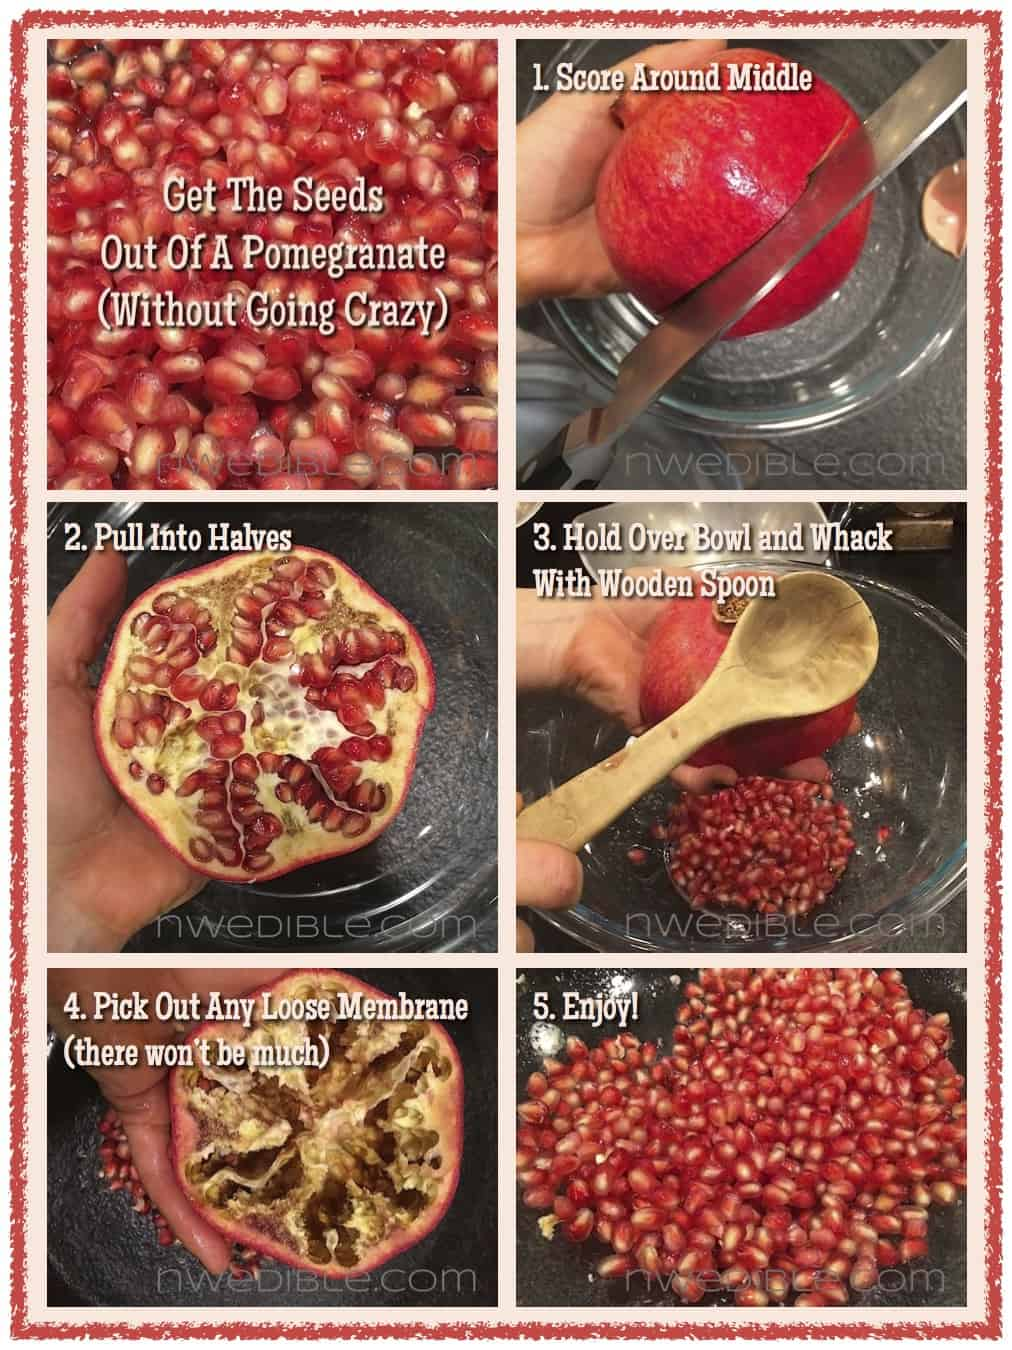 How To Get The Seeds Out Of A Pomegranate